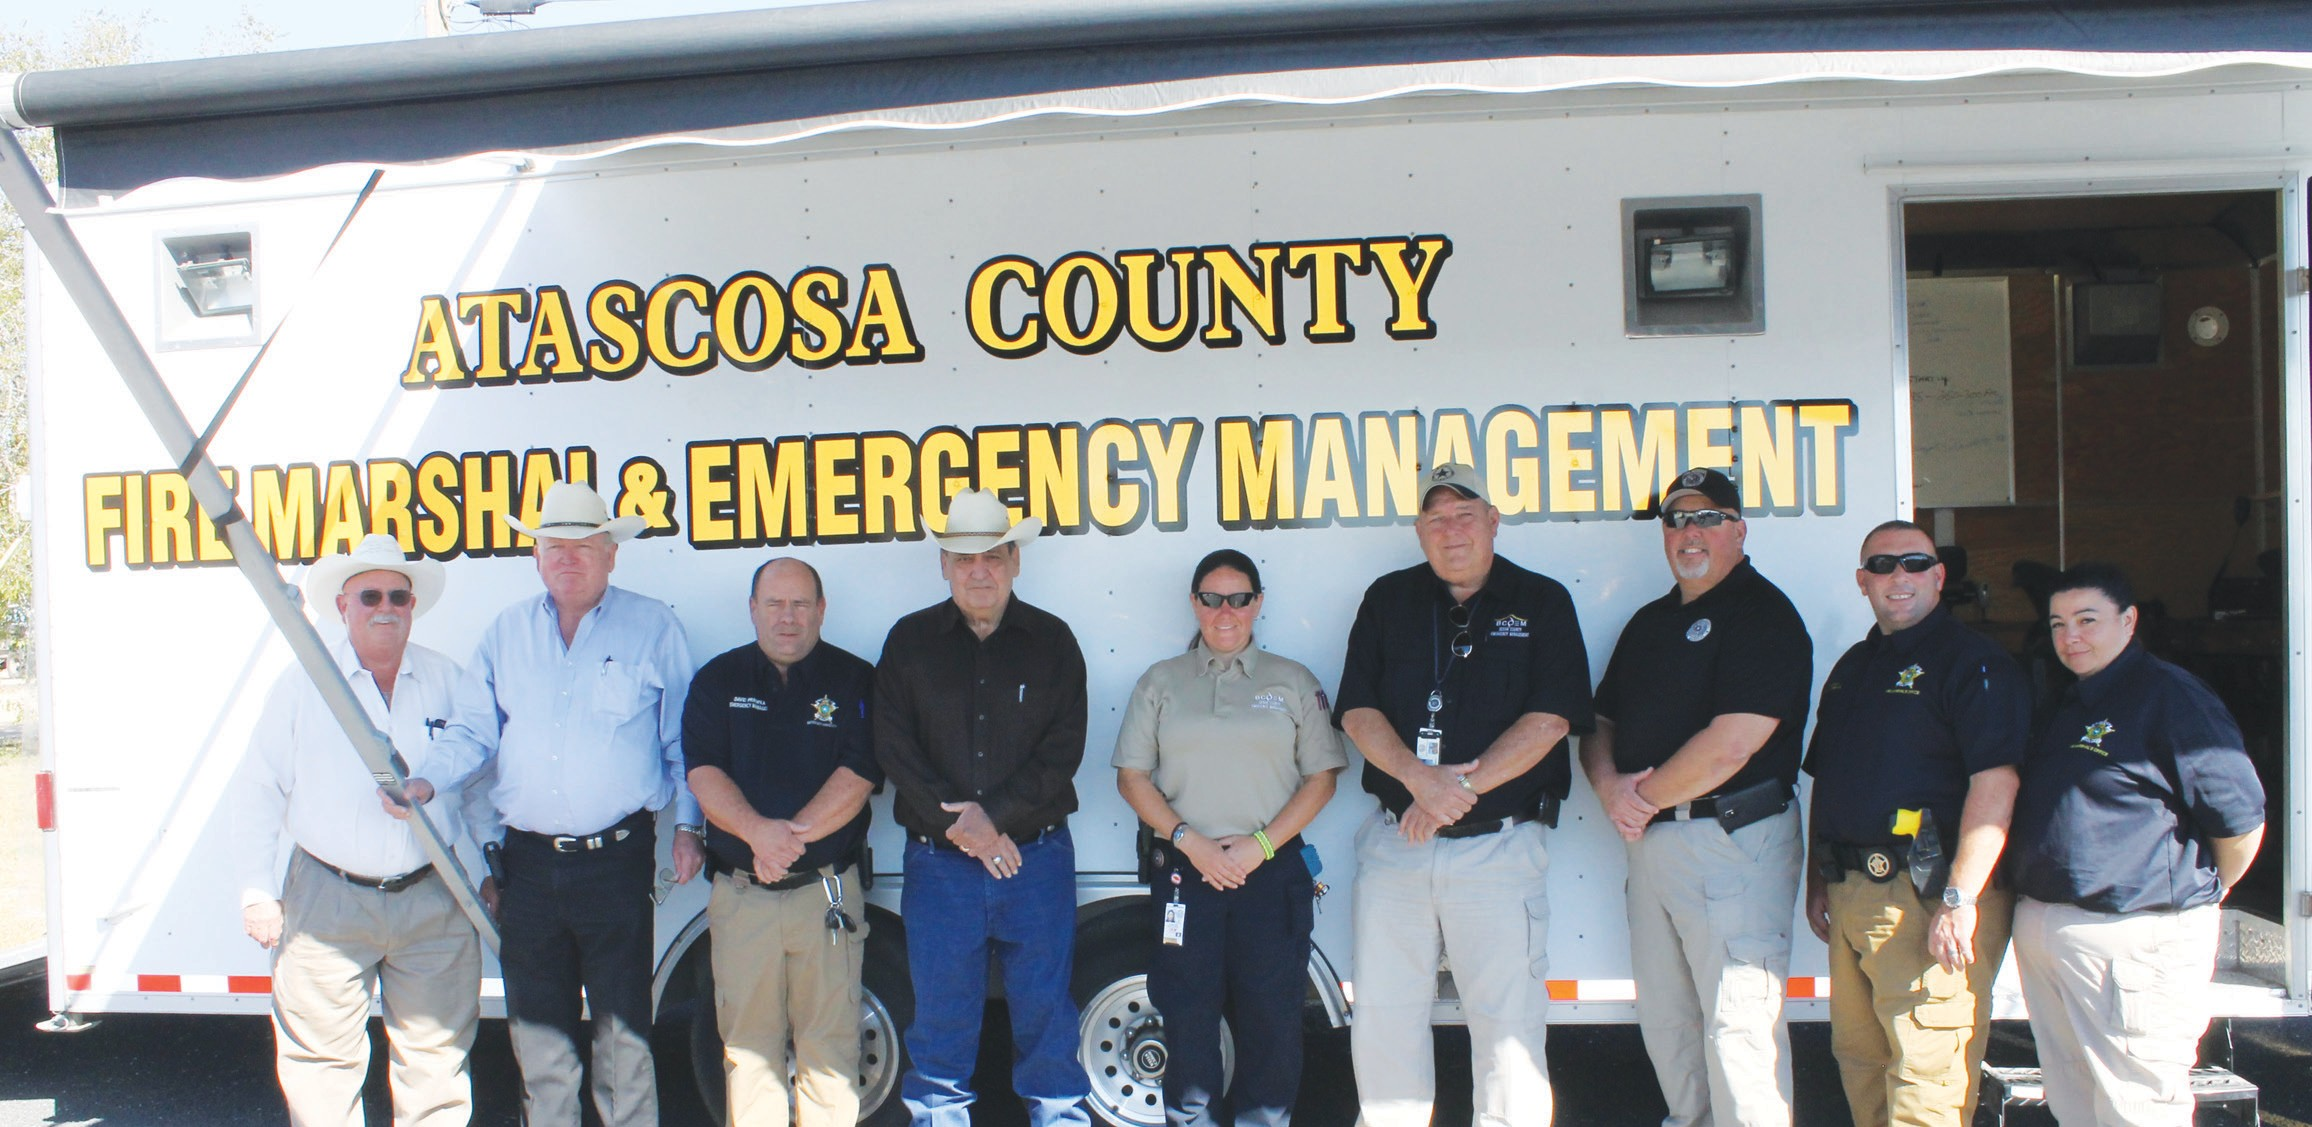 Bexar County Emergency Management Coordinator Kyle Coleman repurposed a combined rehab/ communications trailer to Atascosa County. From left, are Comm. Lonnie Gillespie, Pct. 1; Comm. Bill Carroll, Pct. 4; David Prasifka, Atascosa County Emergency Management Coordinator; Comm. Freddie Ogden, Pct. 3; Tina Neely-Lopez, Bexar County OEM; Kyle Coleman, Bexar County Emergency Manager; Chris Lopez, Bexar County Fire Marshal, Todd Perna, Atascosa County Fire Marshal and Kim Ingram, Reserve MV - Atascosa County FMO